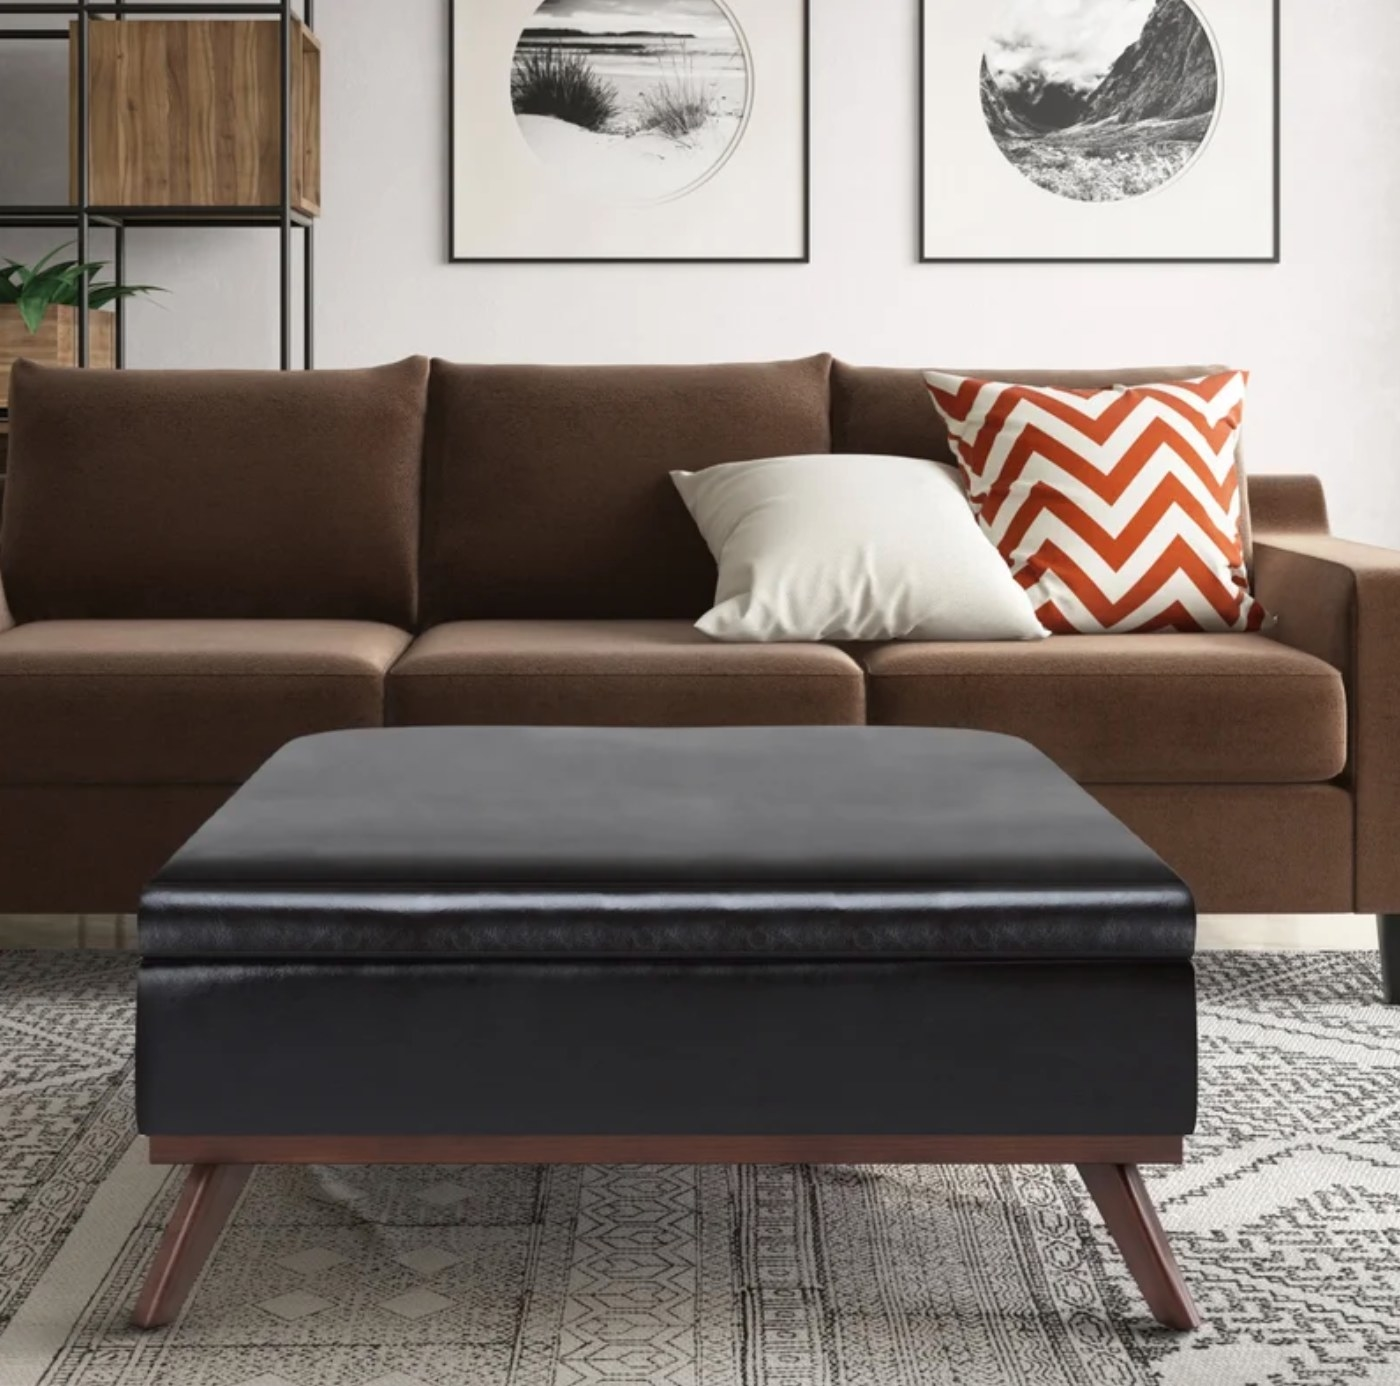 The ottoman in tanners brown faux leather